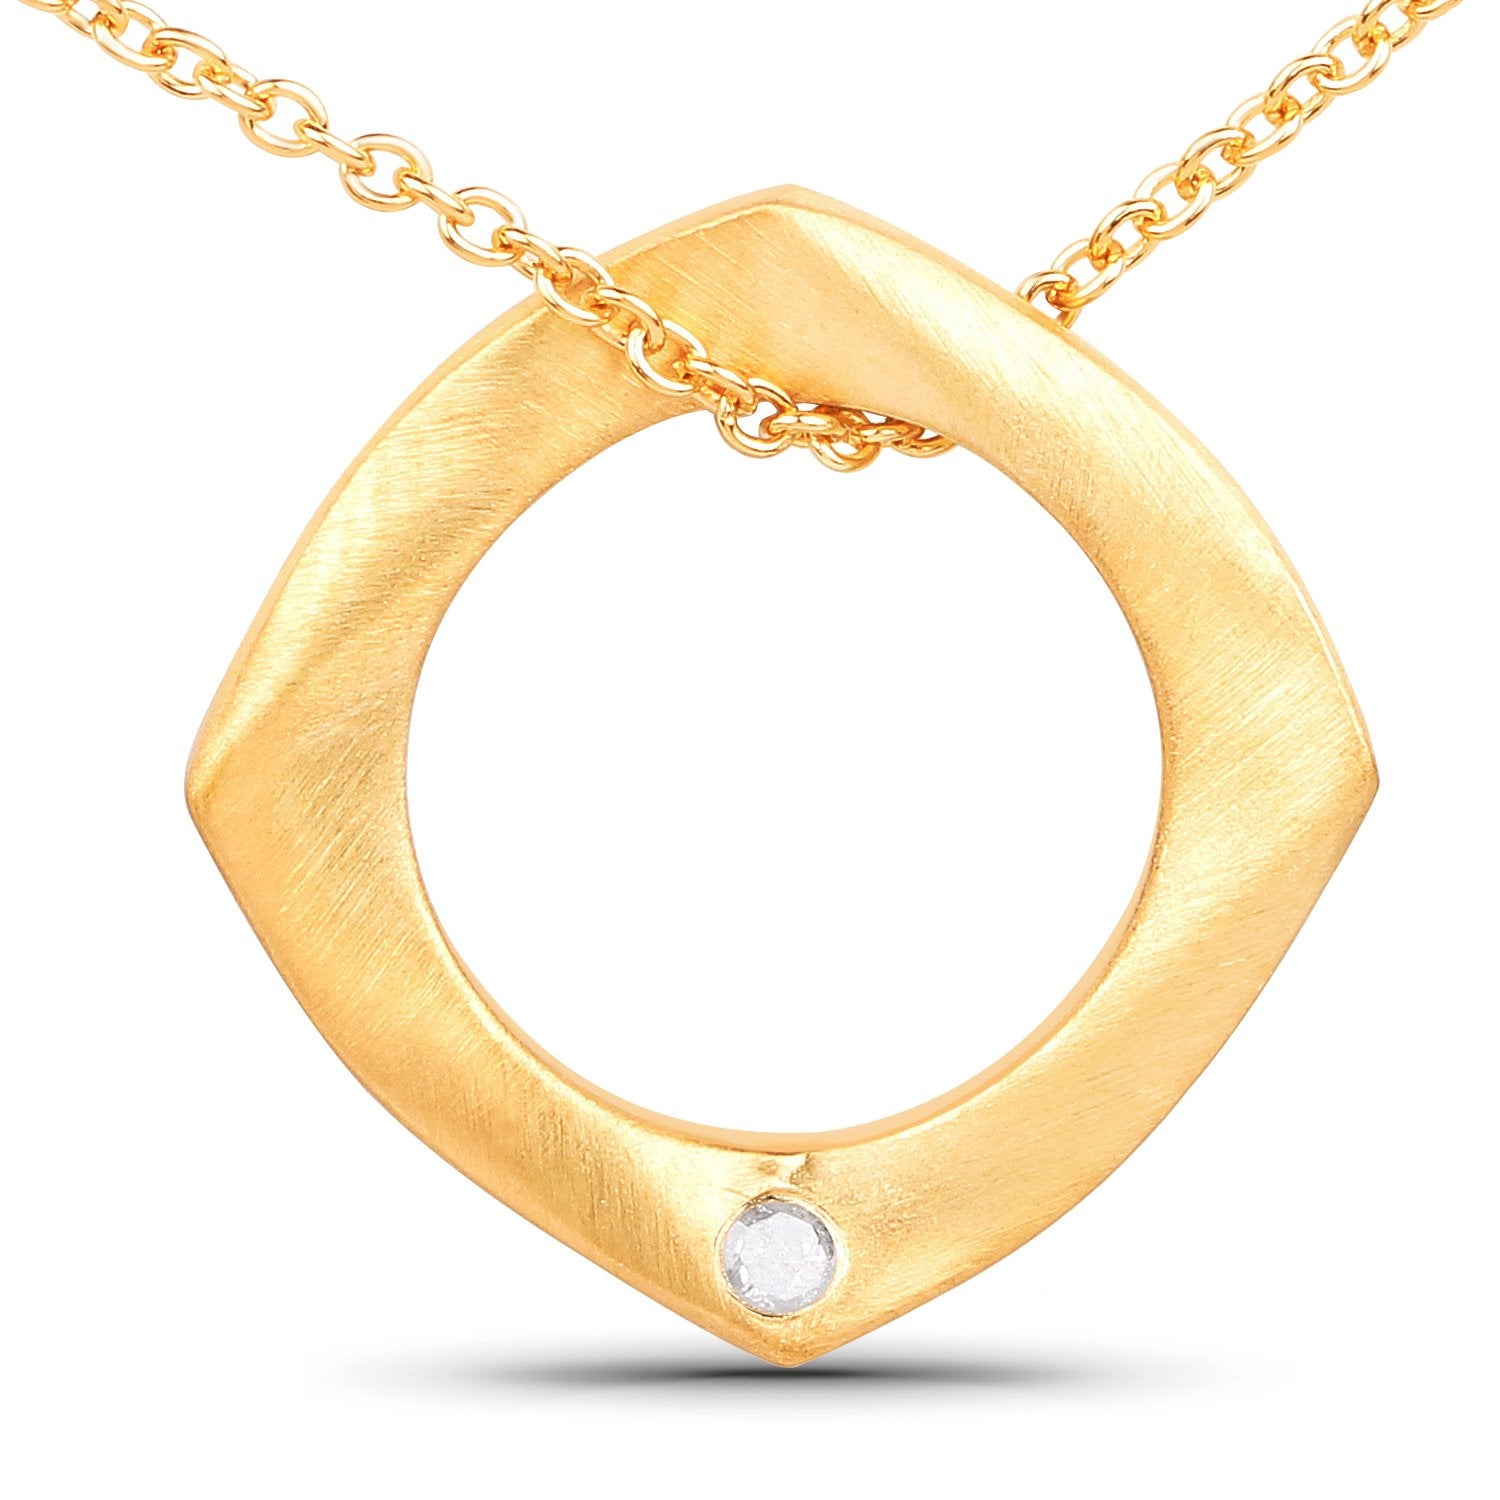 LoveHuang 0.03 Carats Genuine White Diamond (I-J, I2-I3) Circle Of Life Pendant Solid .925 Sterling Silver With 18KT Yellow Gold Plating, 18Inch Chain